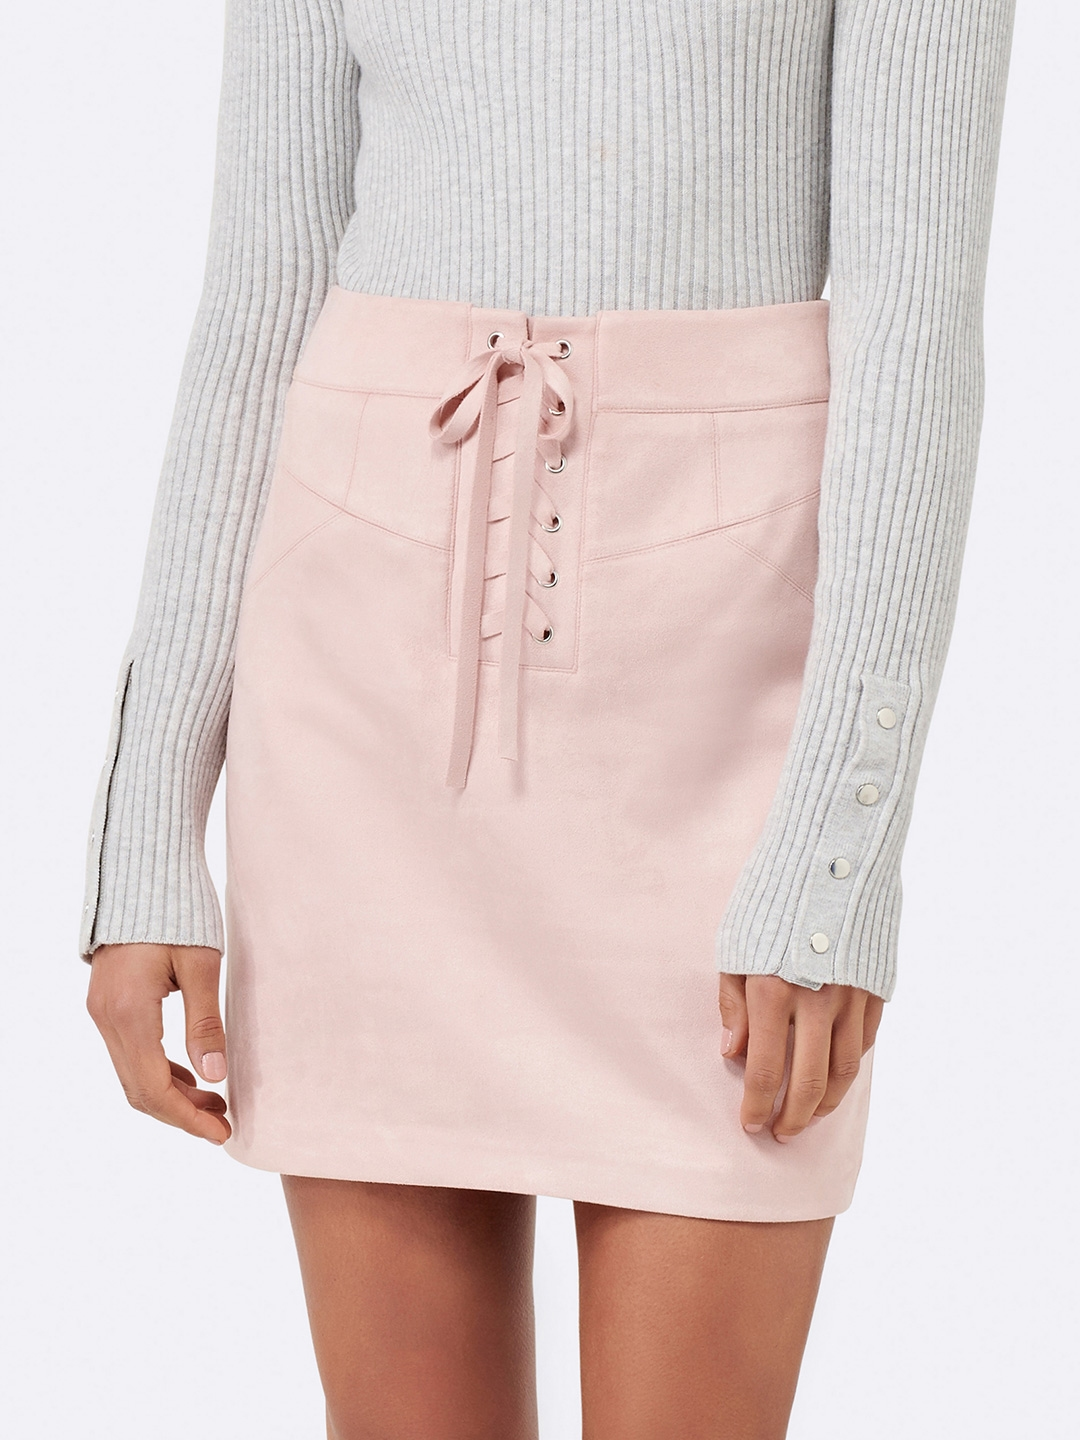 678c6b43d3 Buy Forever New Pink Pencil Skirt - Skirts for Women 5394142 | Myntra